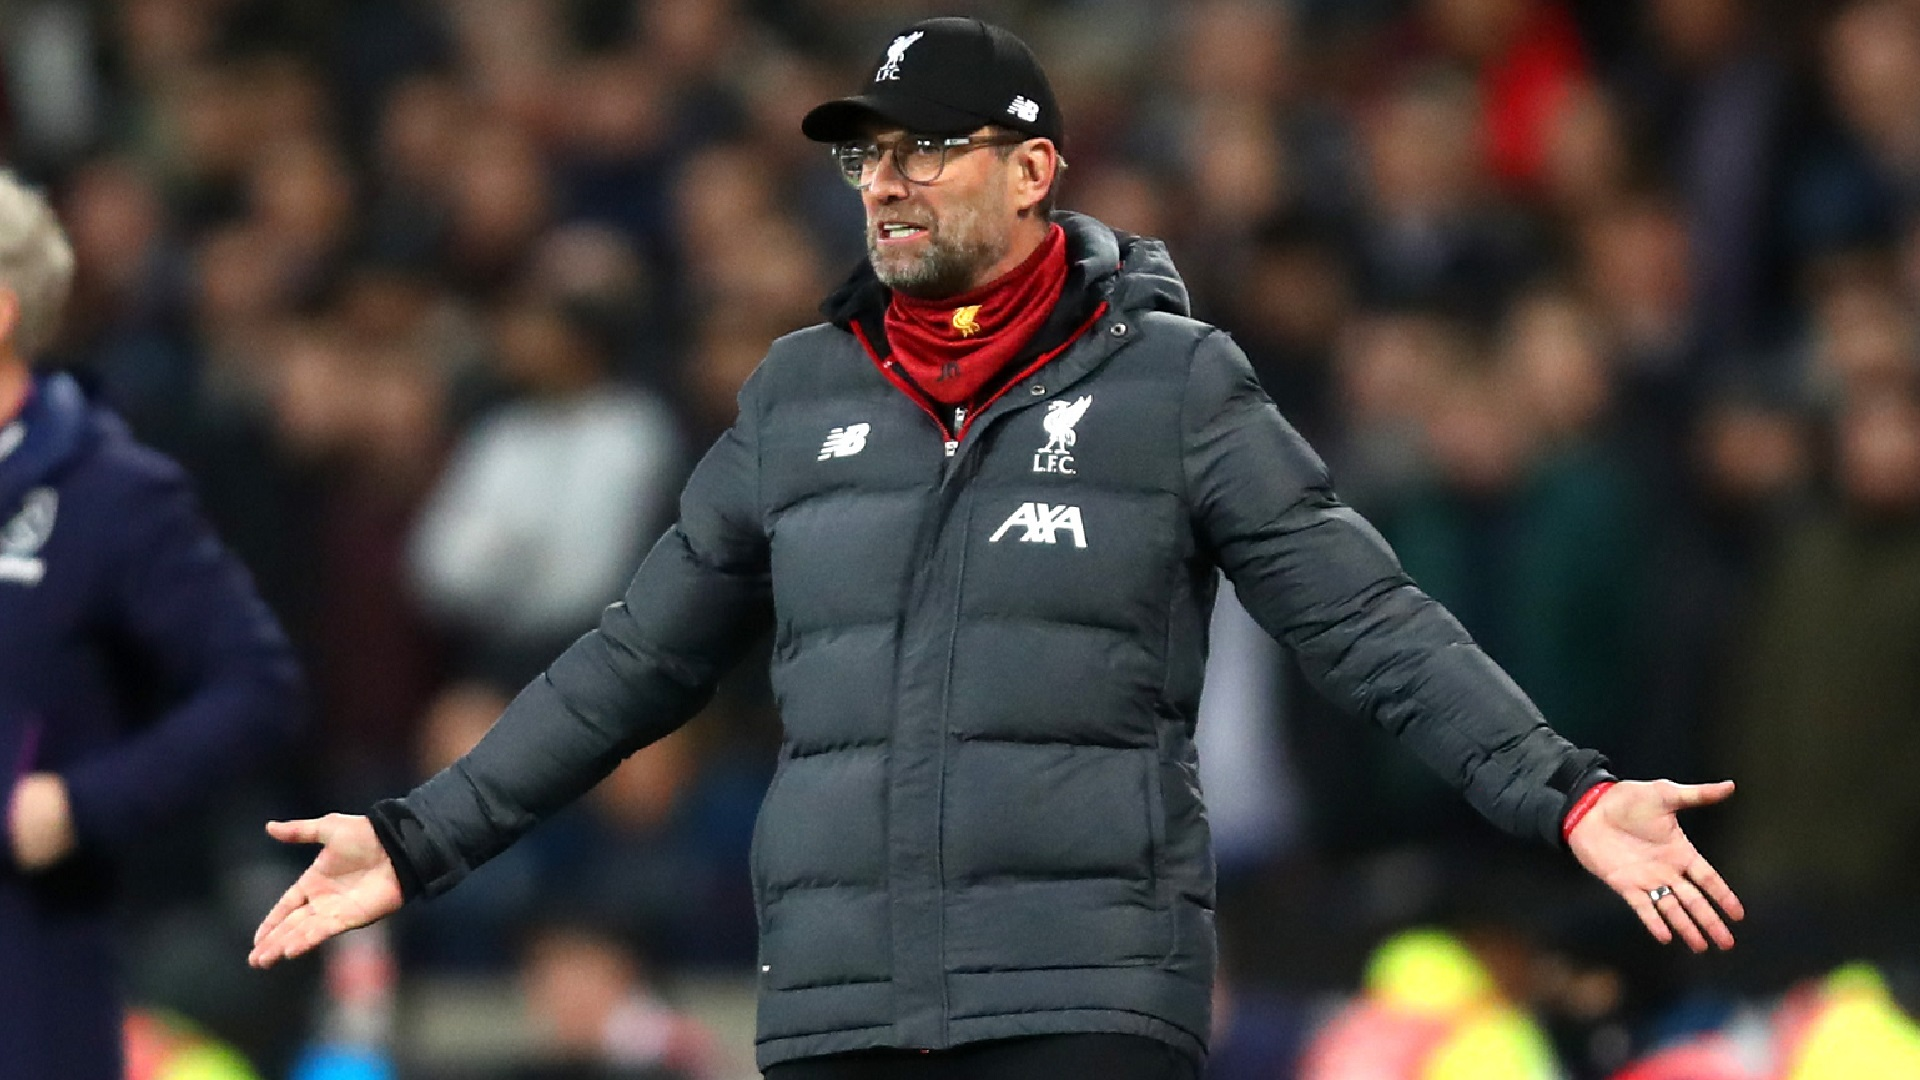 Jurgen Klopp: Not possible for Liverpool to replicate Manchester United's Premier League dominance